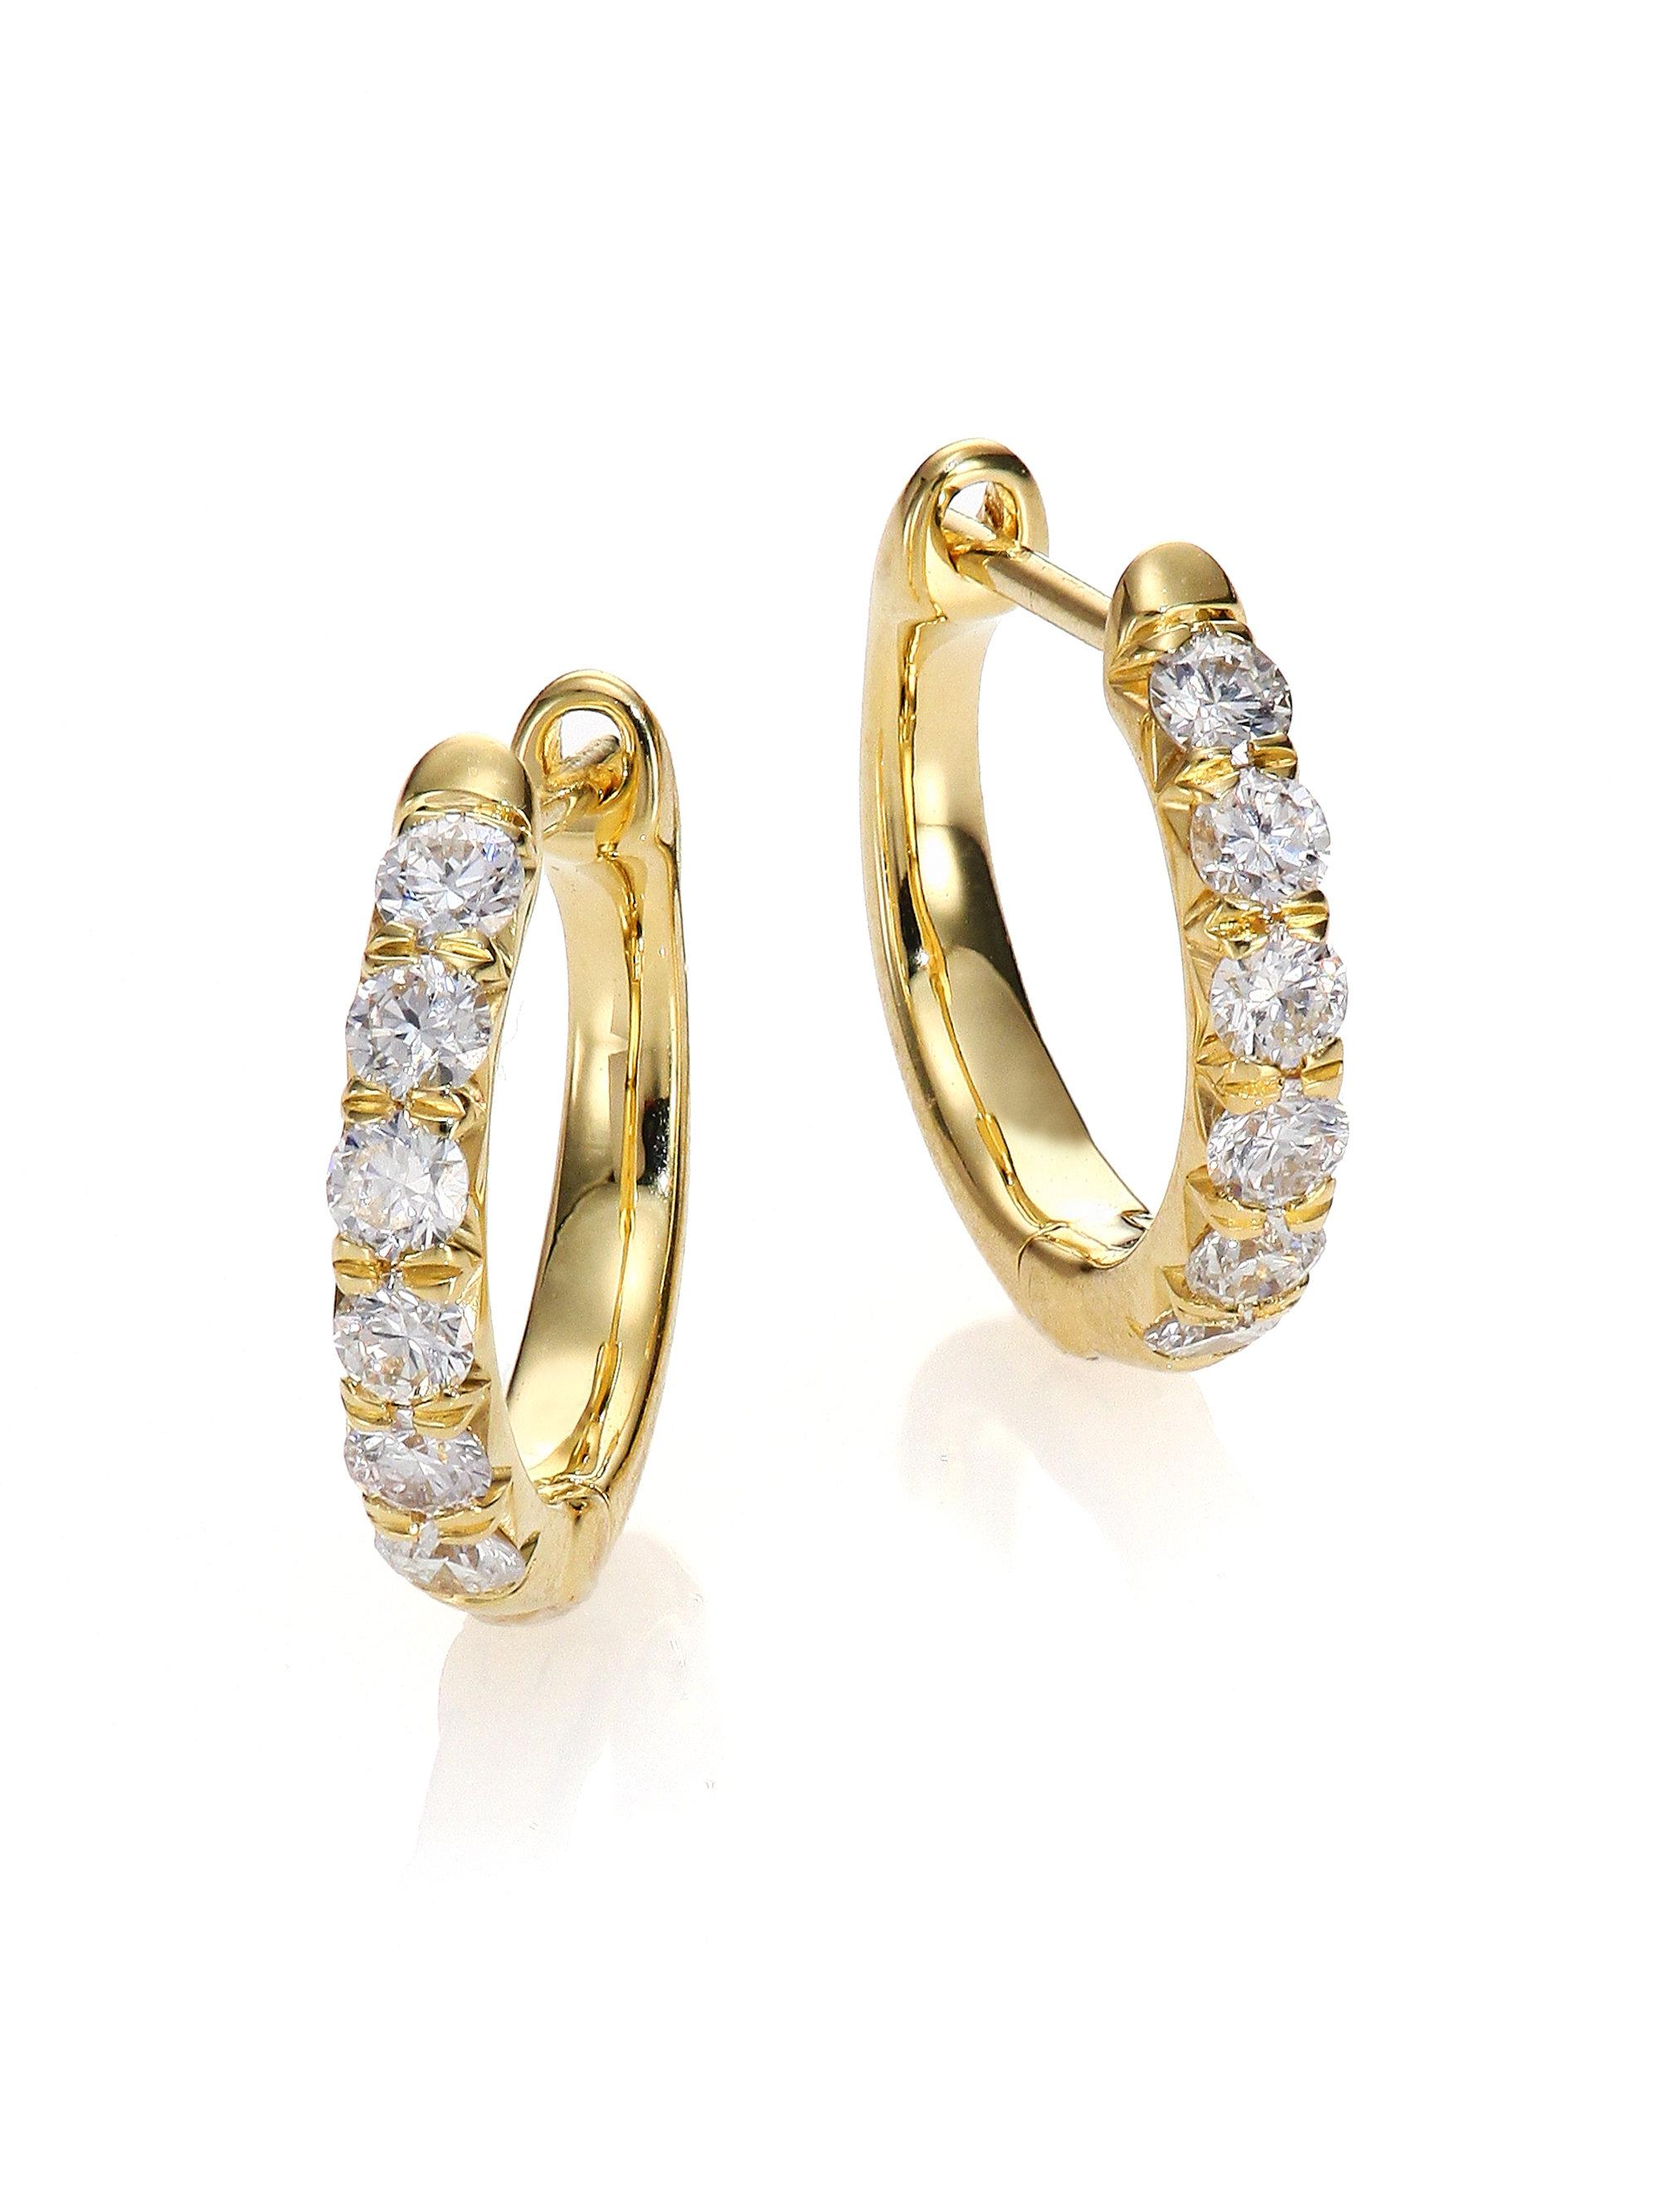 Jude Frances Lisse Small Clover Hoop Earrings with Diamonds uhCavH6p